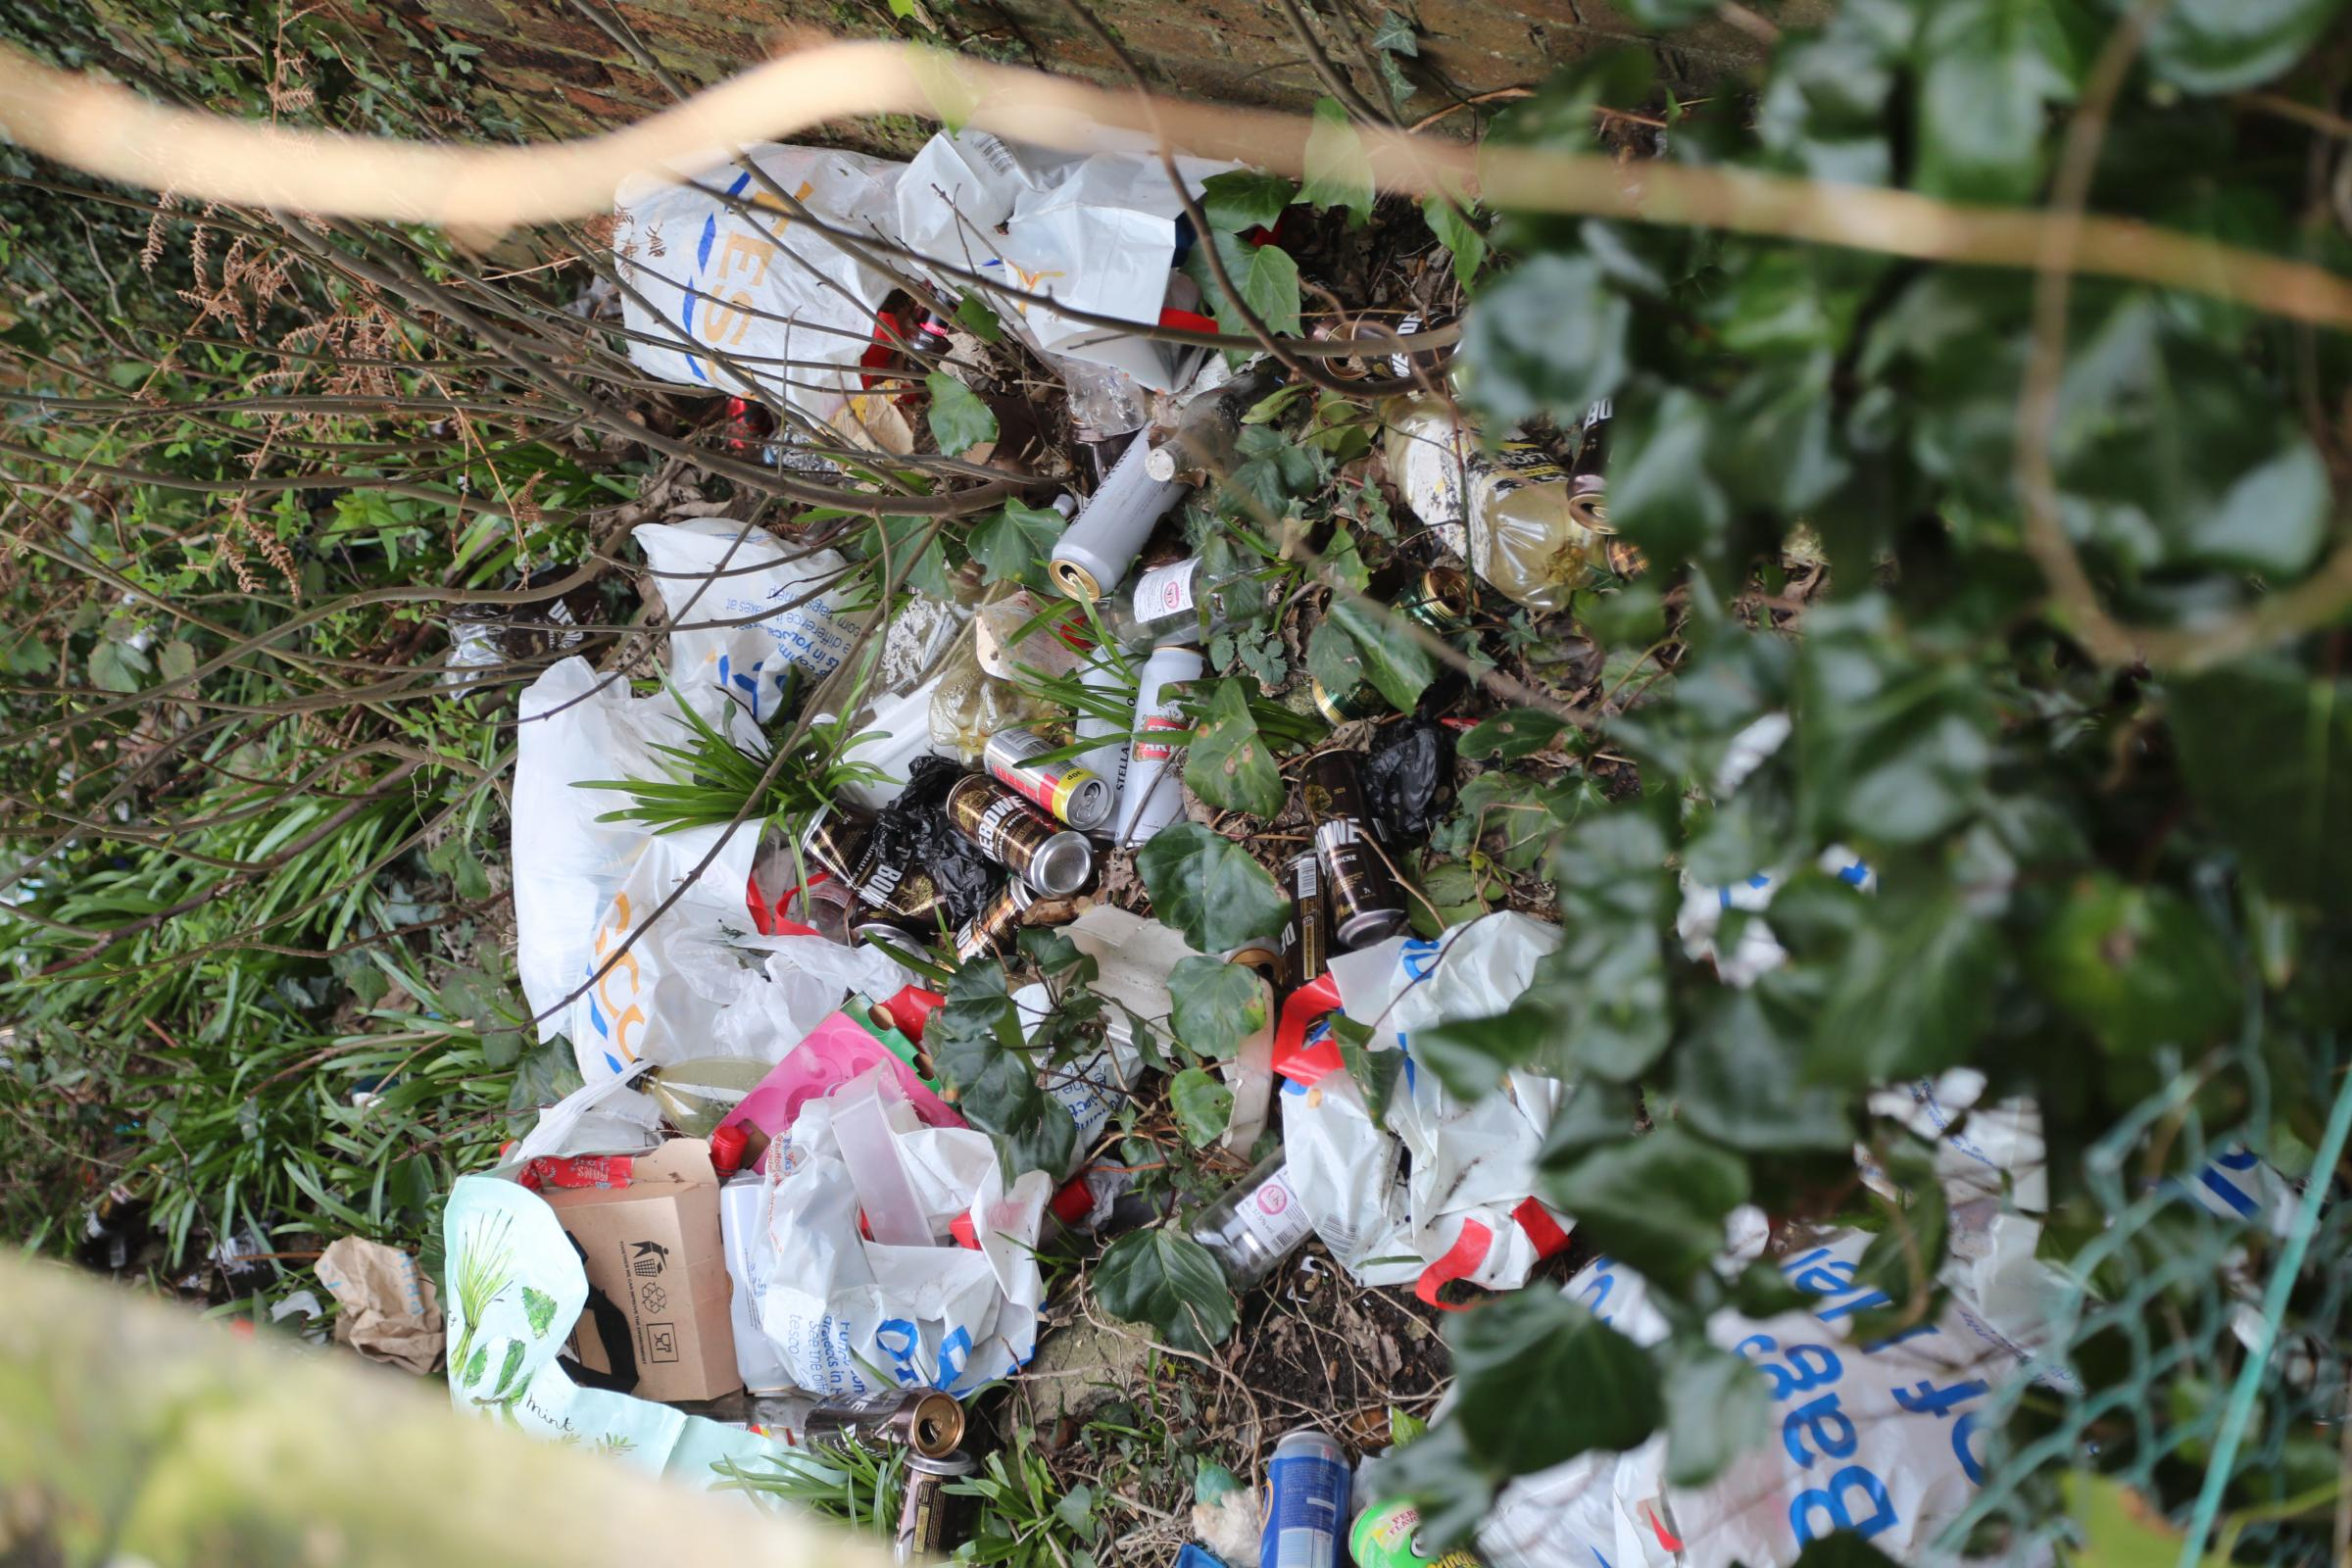 Rubbish thrown on land near the railway lines in Bournemouth